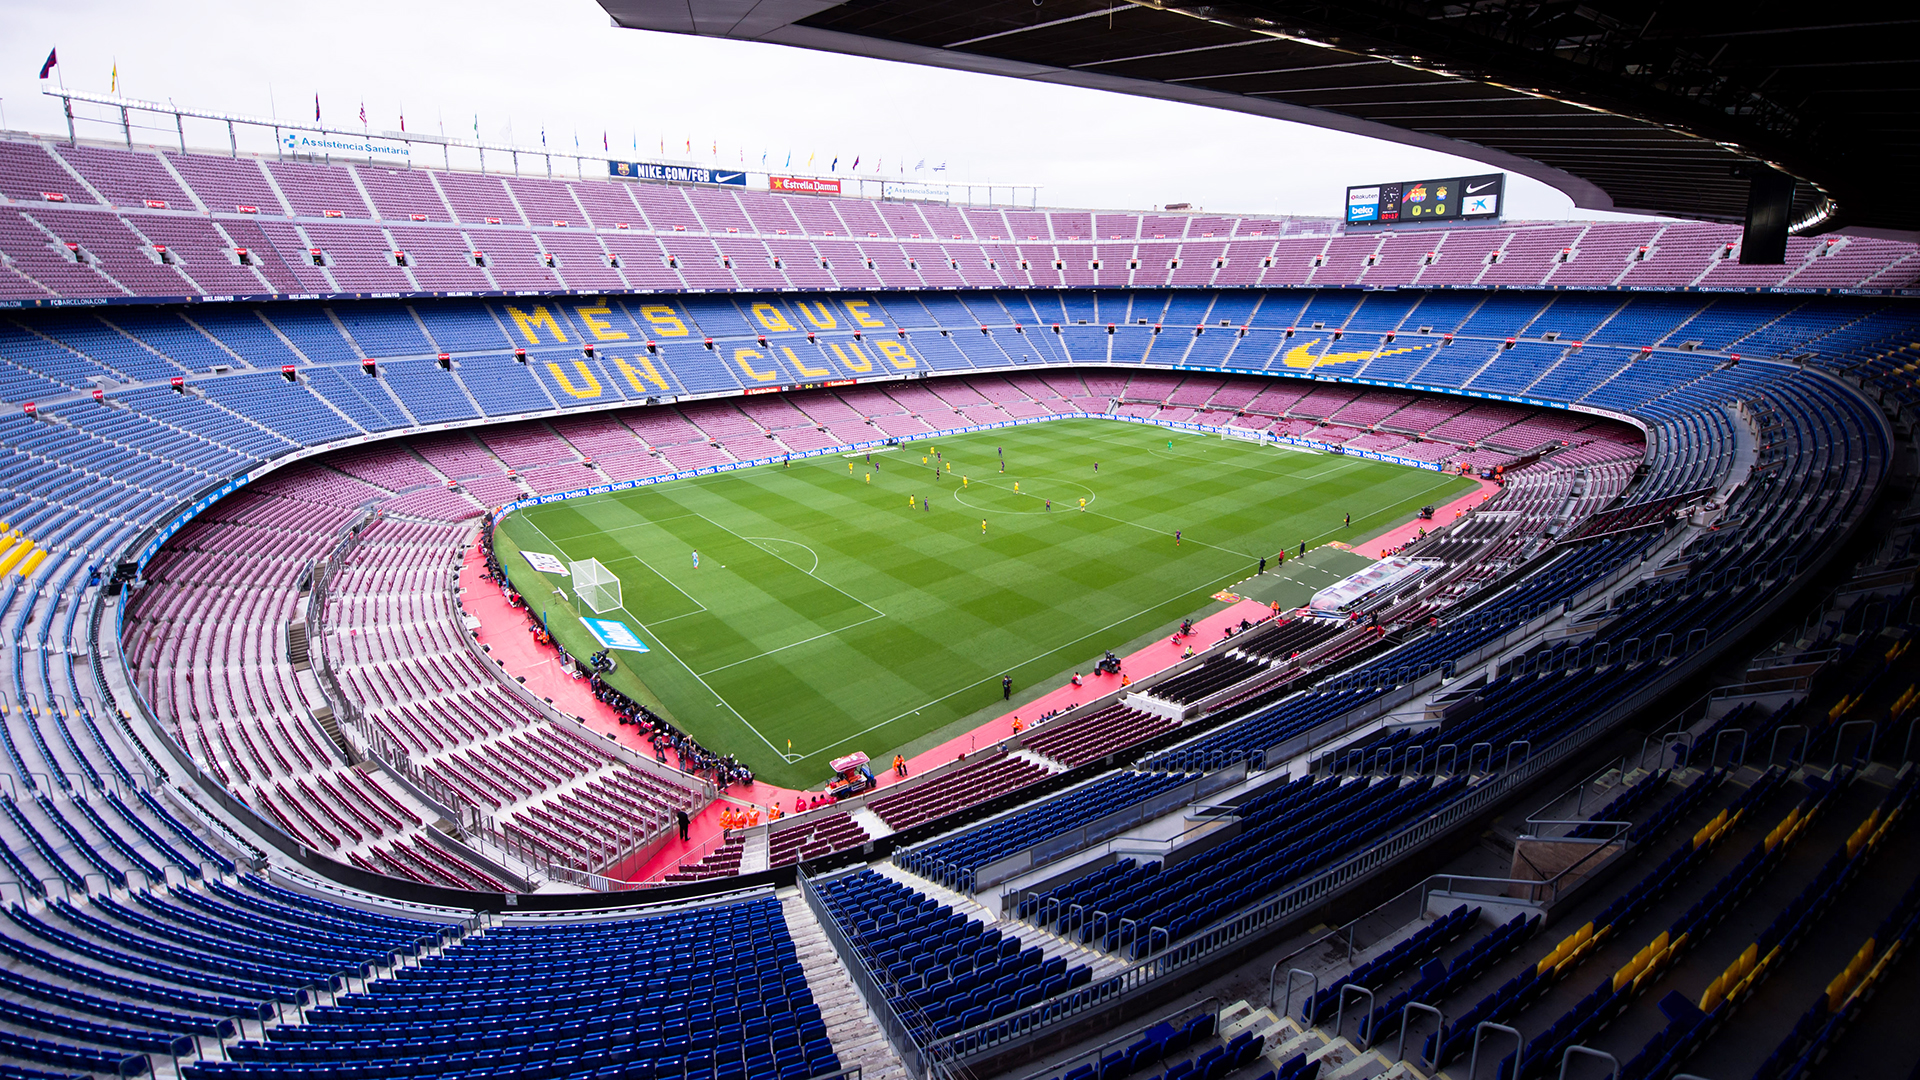 Camp Nou. Virtual background to use on Zoom, Microsoft Teams, Skype, Google Meet, WebEx or any other compatible app.